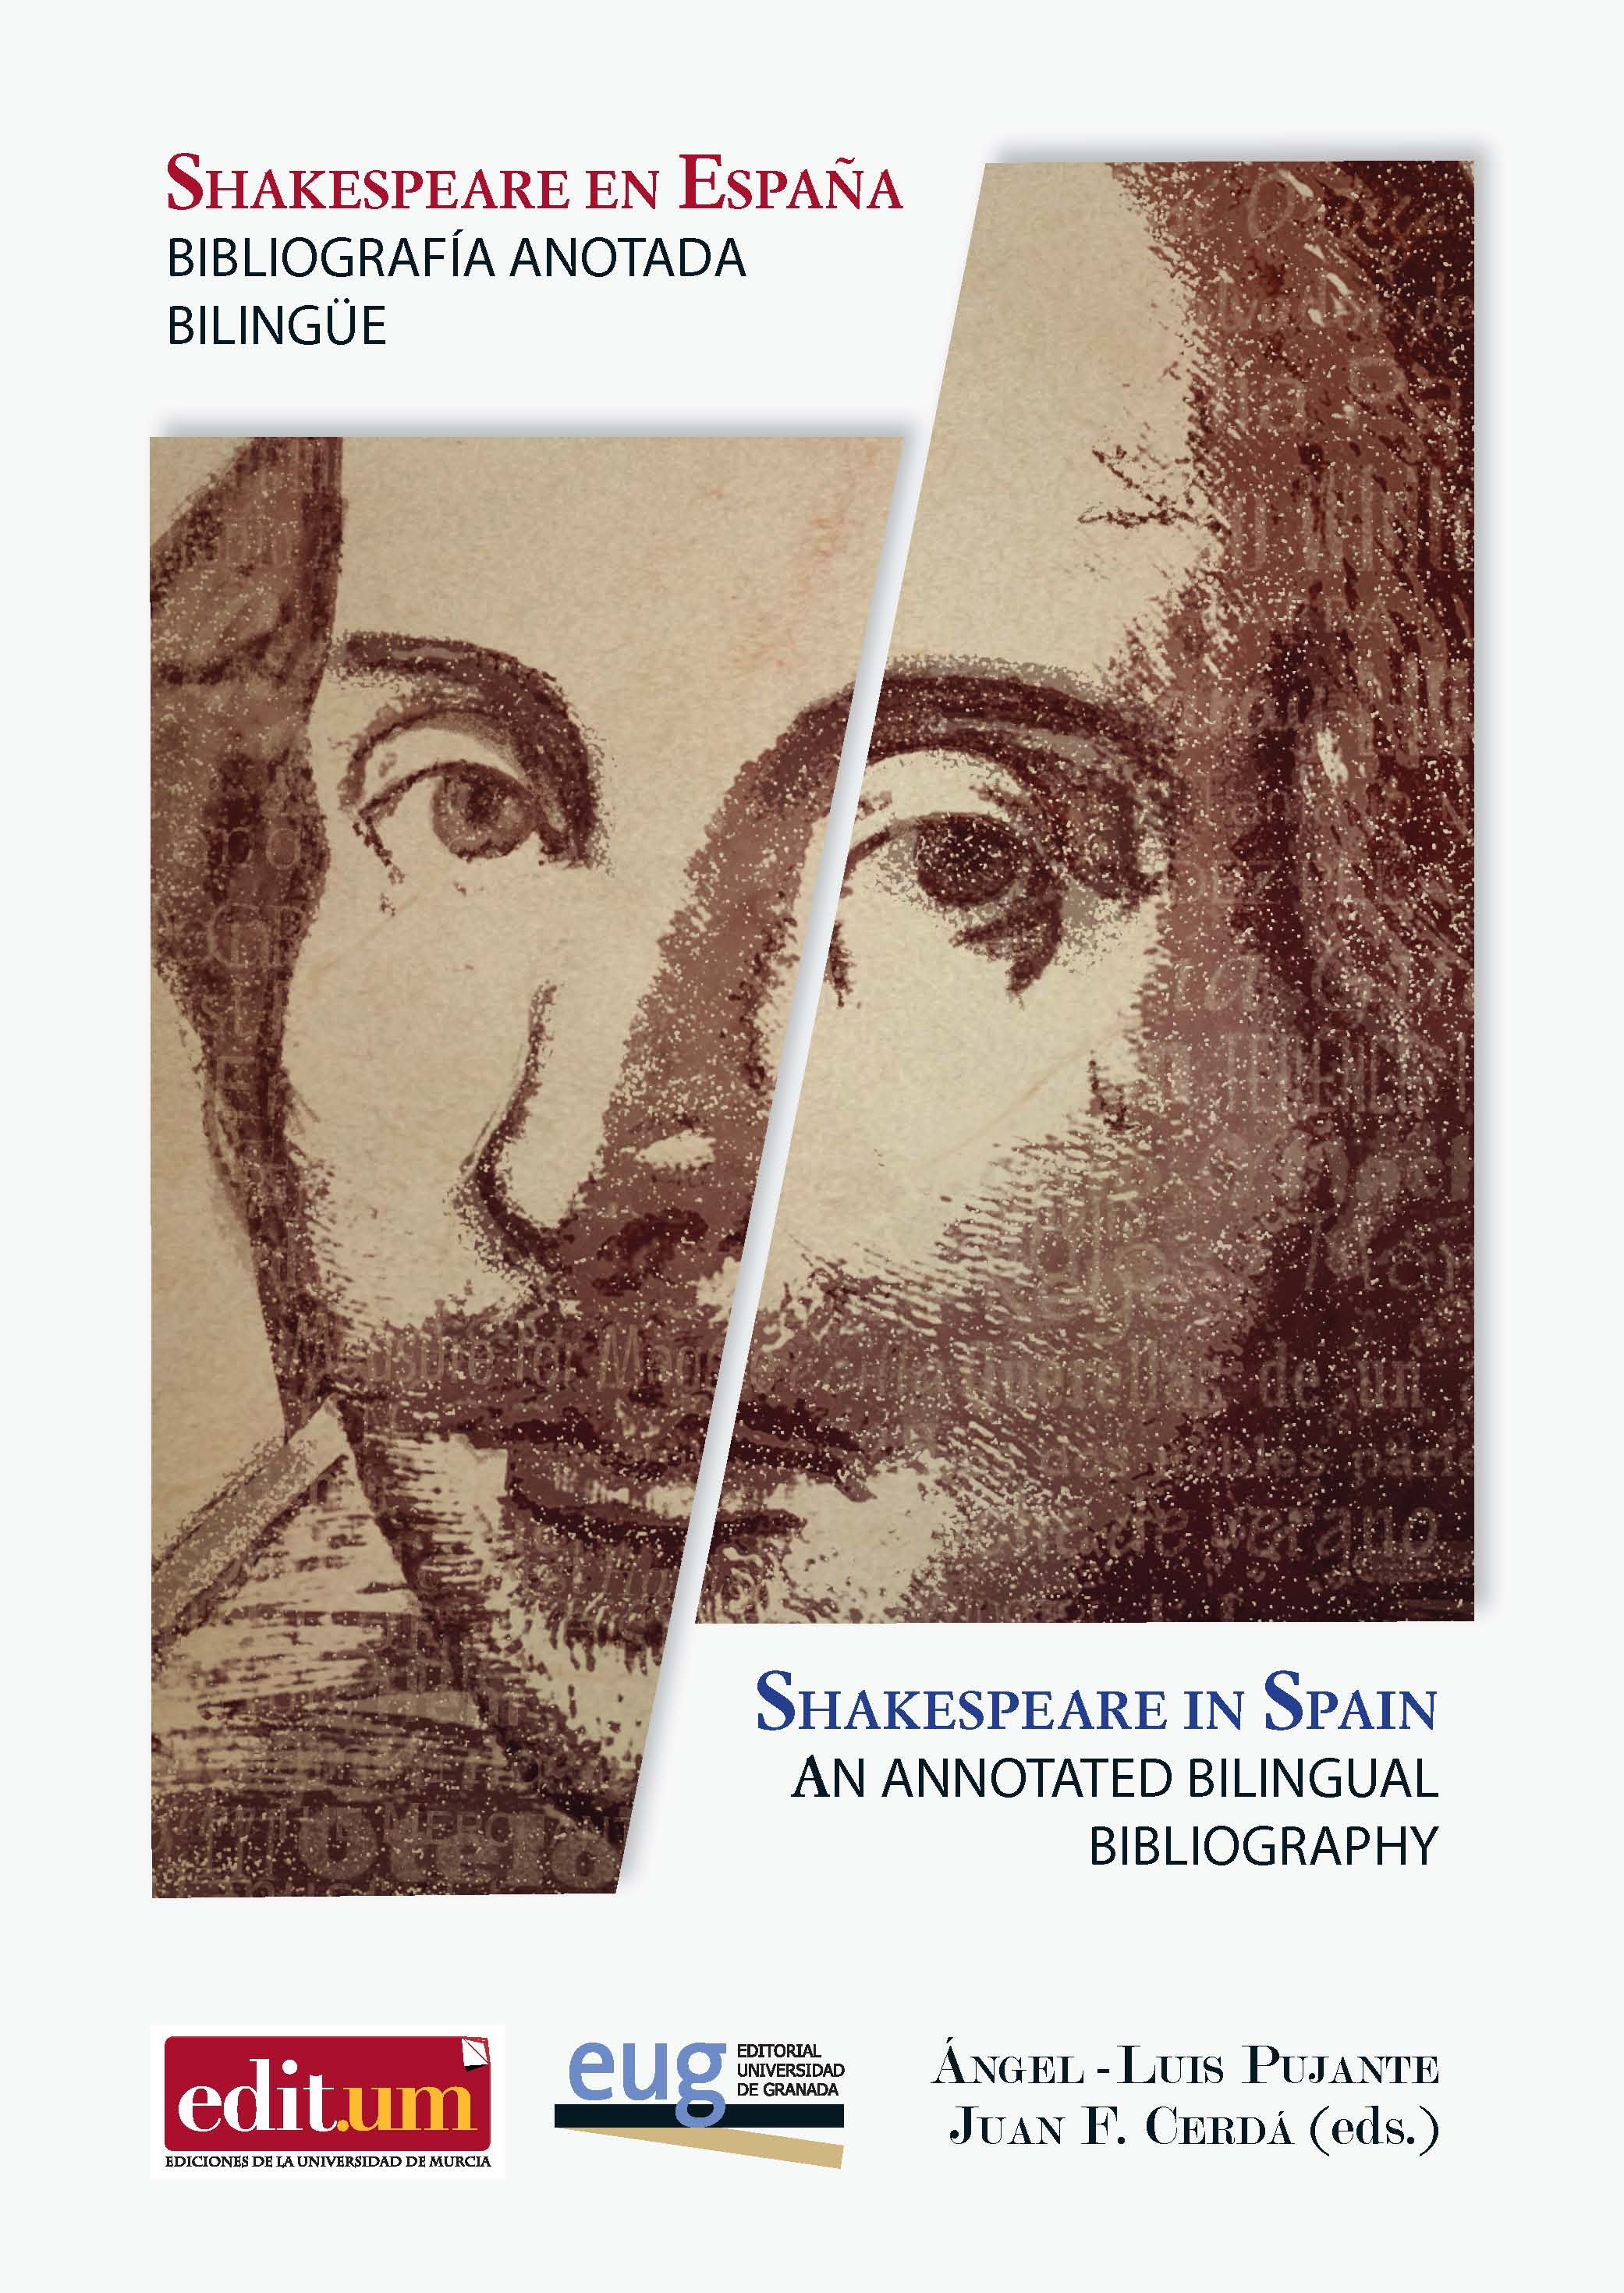 SHAKESPEARE EN ESPAÑA. BIBLIOGRAFÍA ANOTADA BILINGÜE - SHAKESPEARE IN SPAIN AN ANNOTATED BILINGUAL BIBLIOGRAPHY